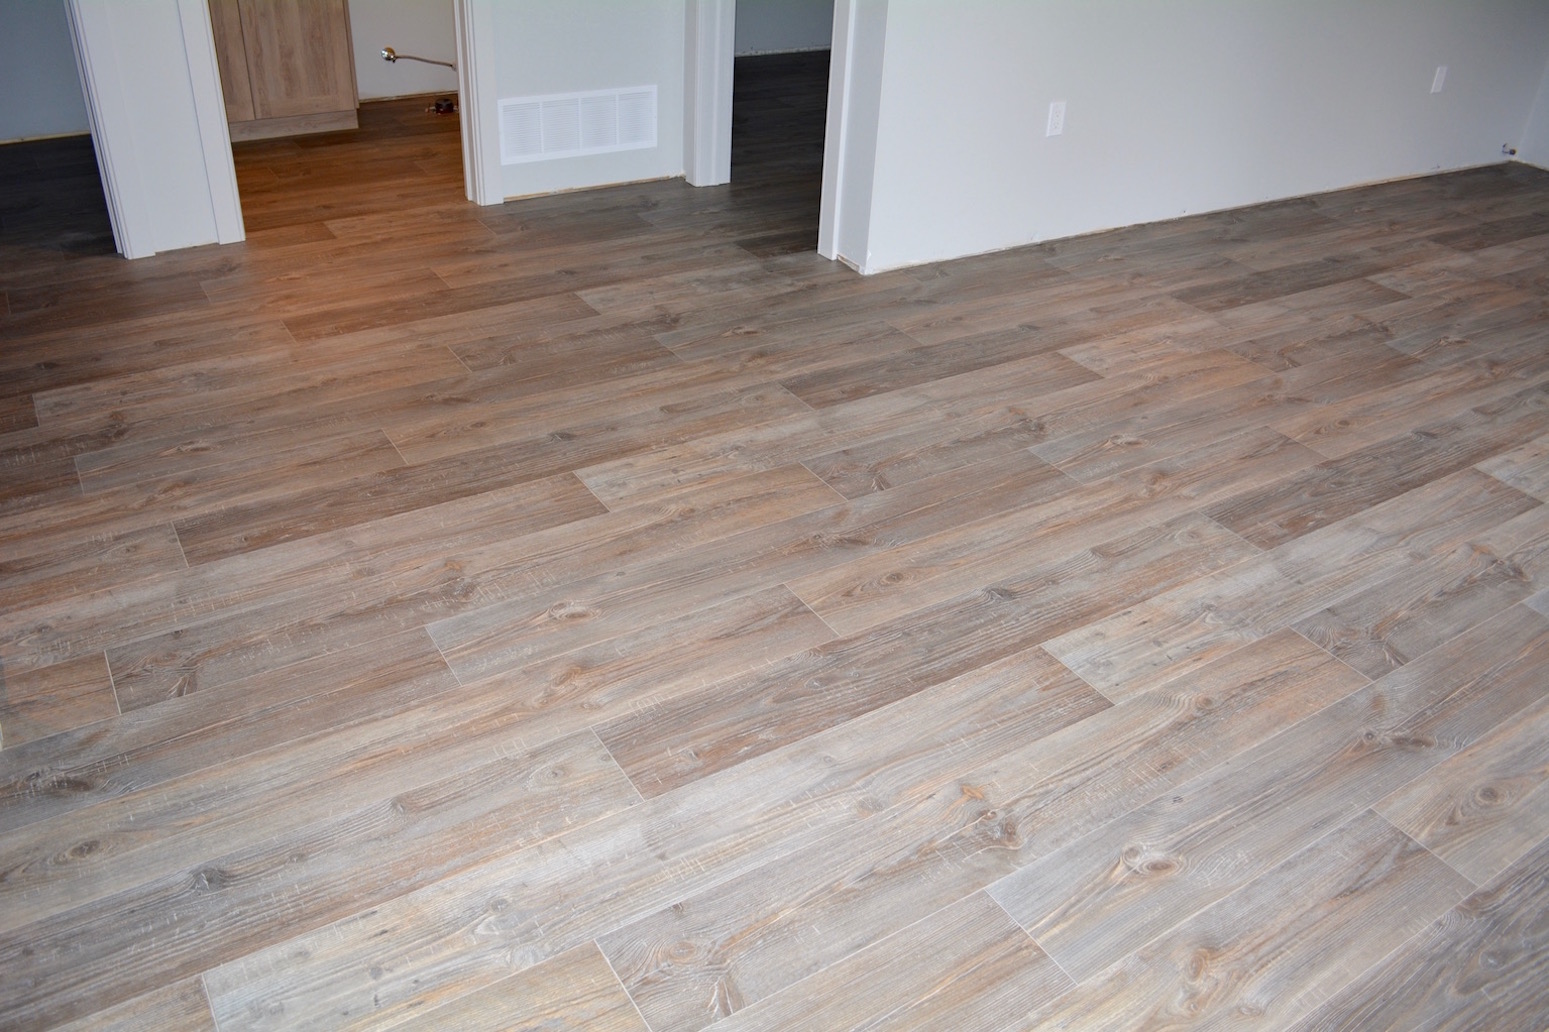 Muskoka 10 flooring solutions muskoka flooring tile for Flooring solutions